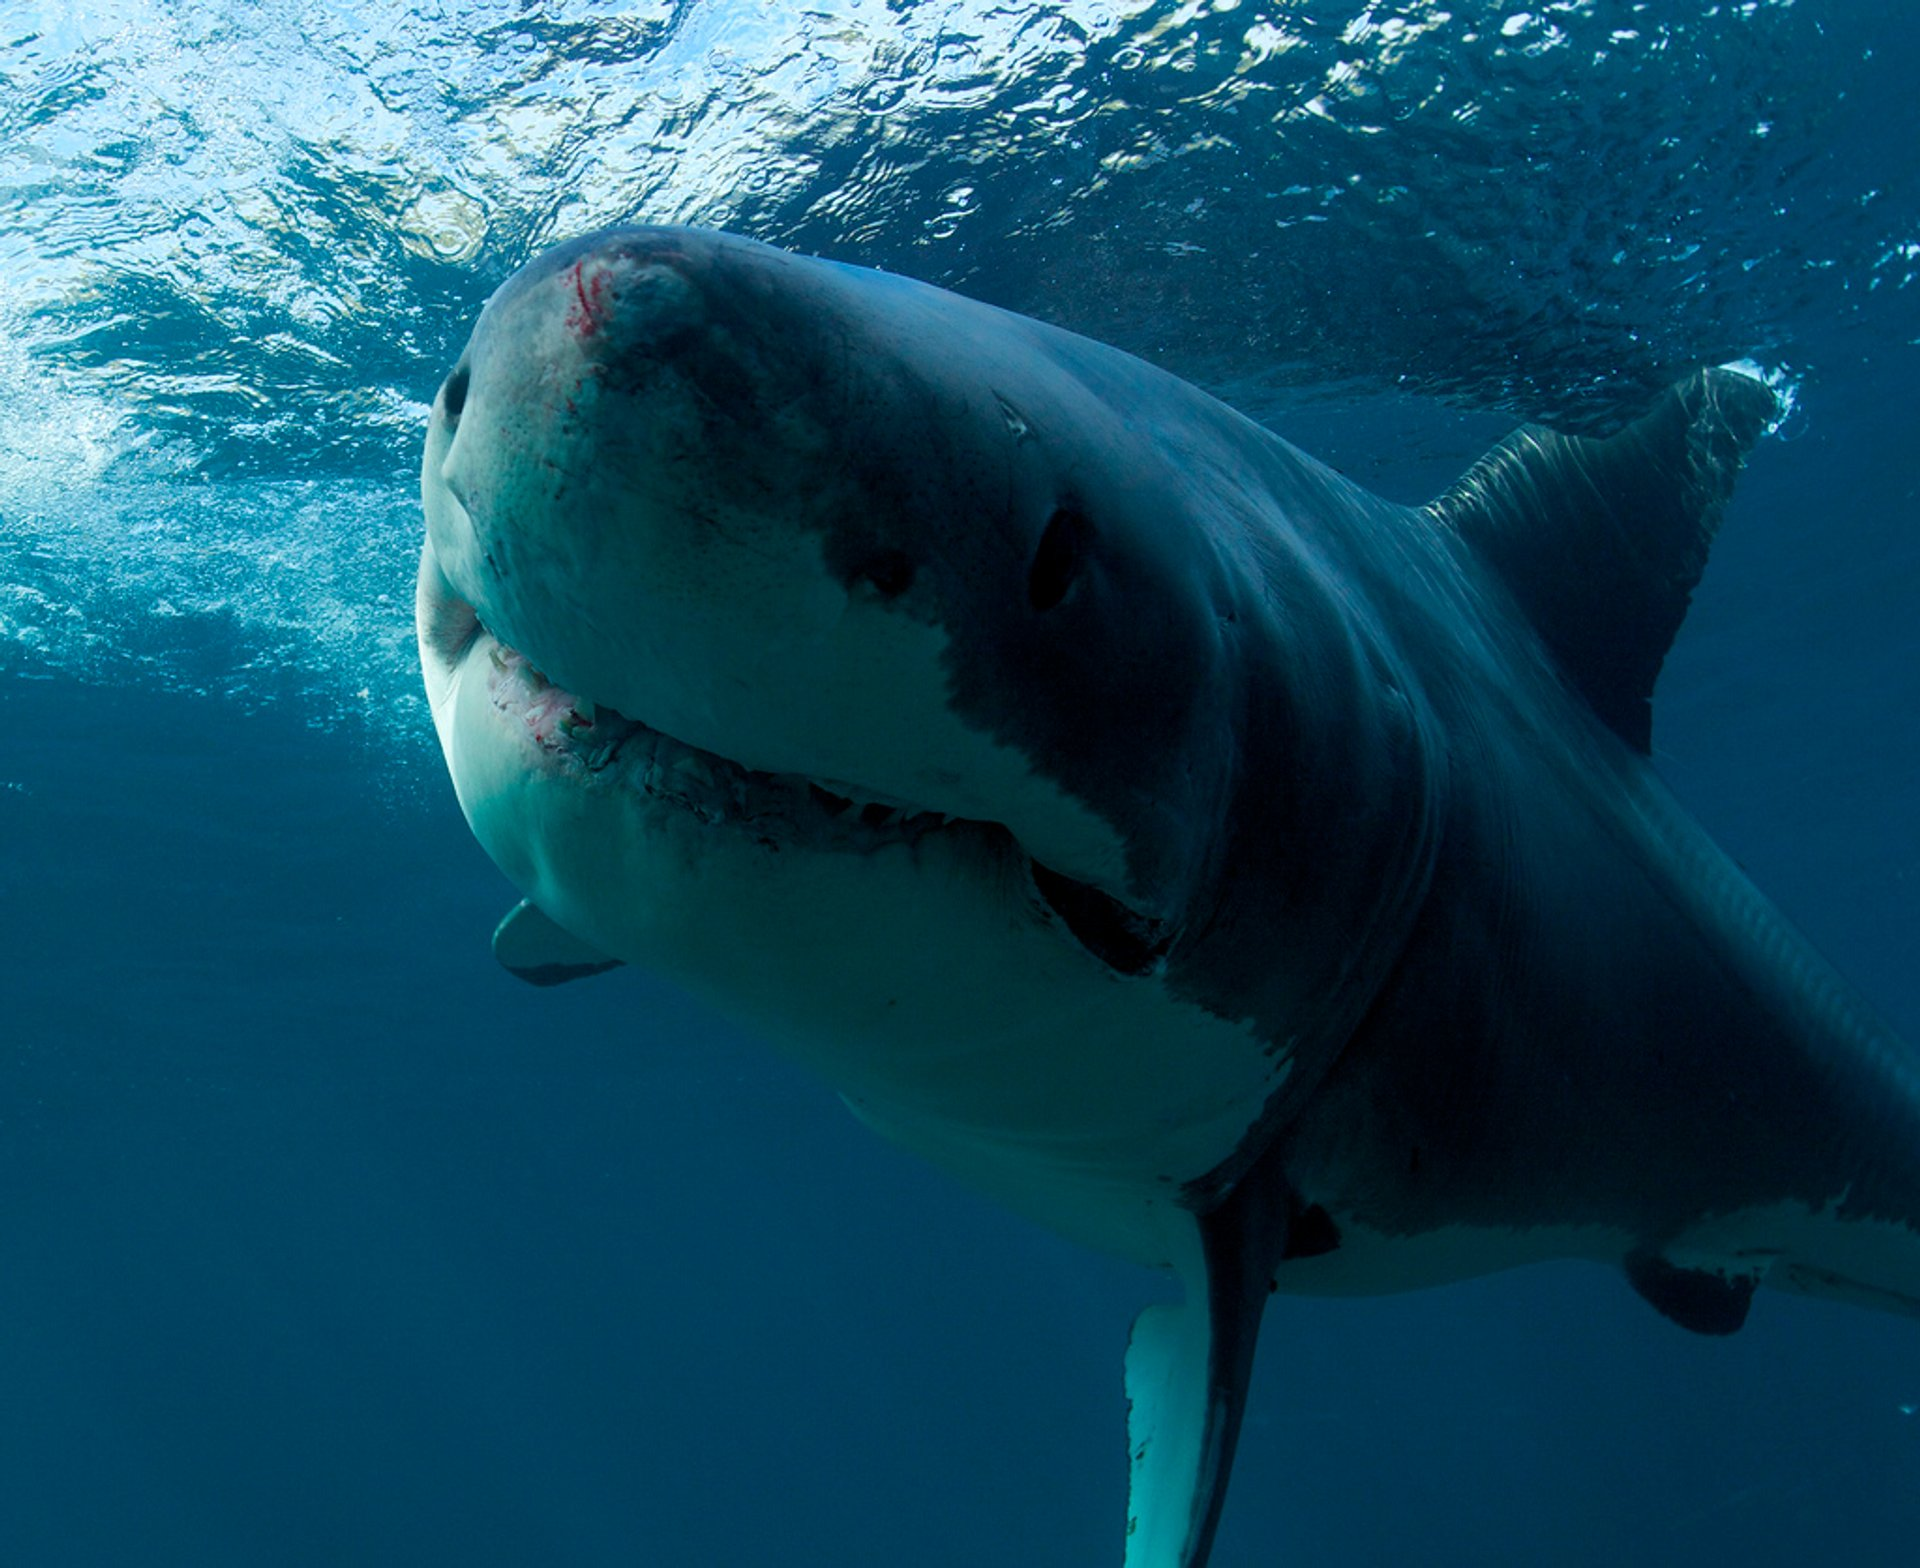 Great White Shark Cage Diving in New Zealand - Best Season 2020